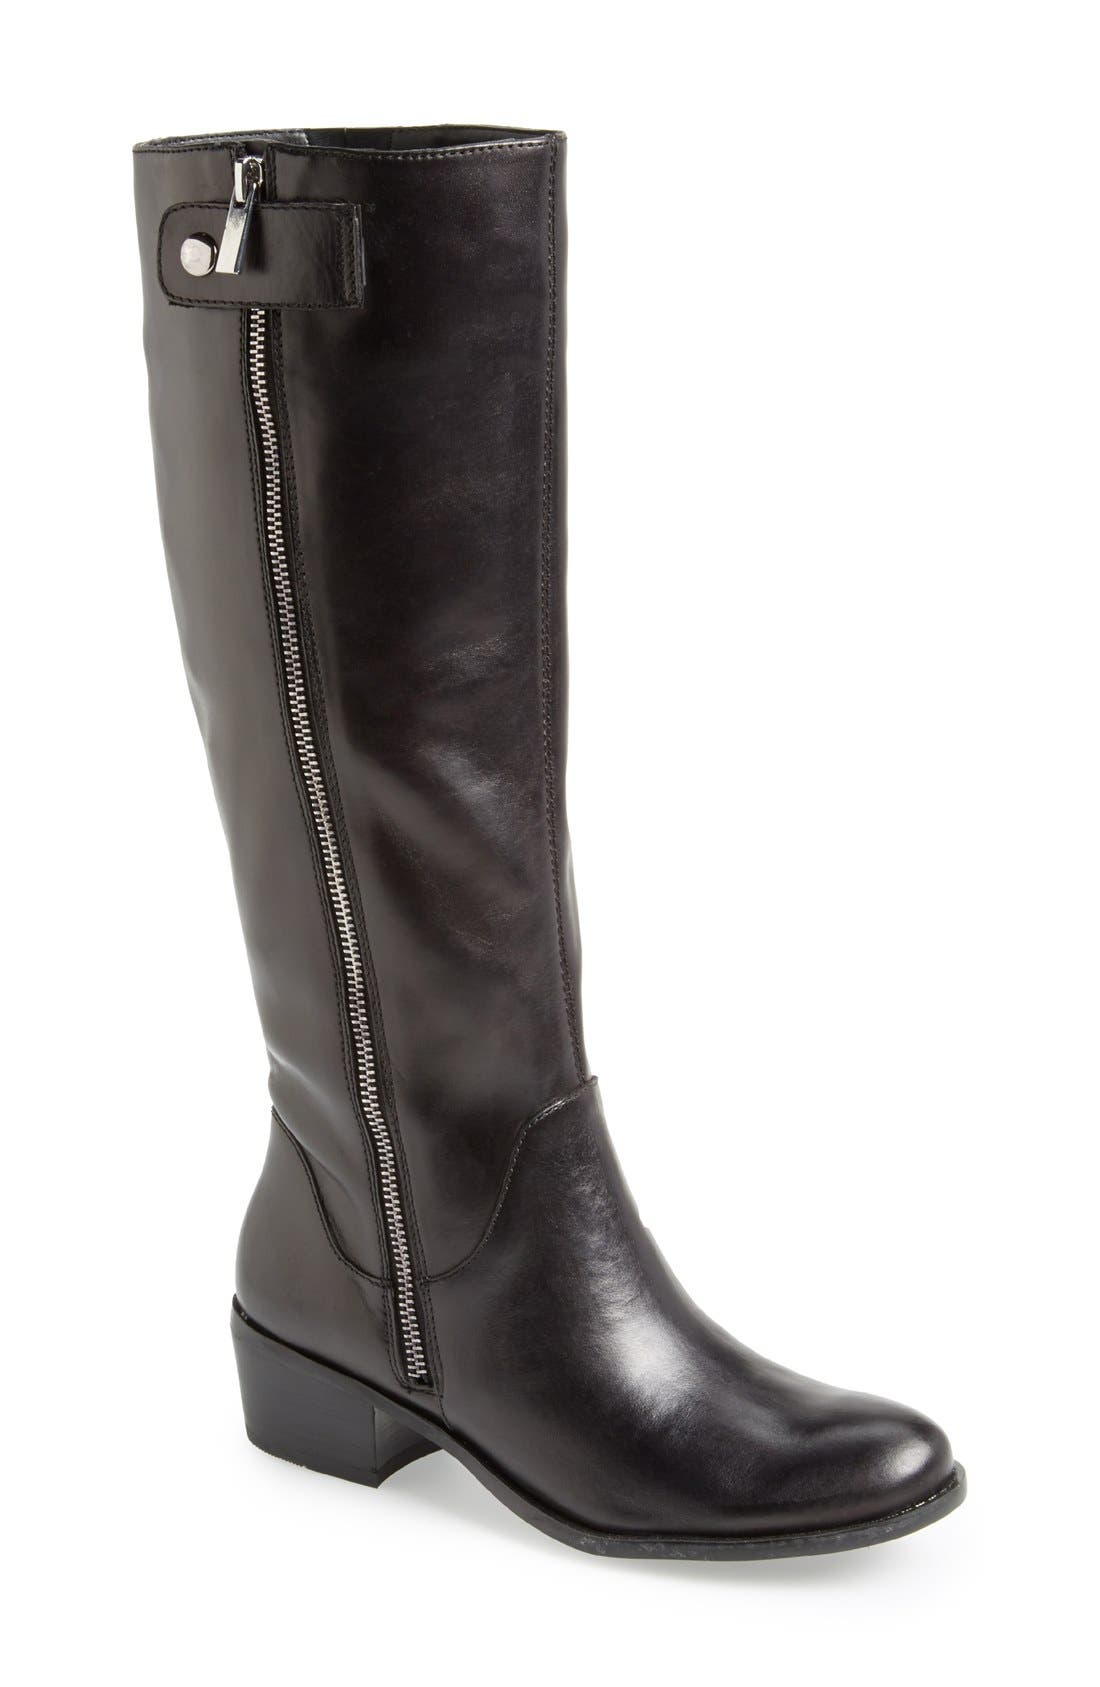 Main Image - Sole Society 'Bria' Leather Knee High Boot (Women)